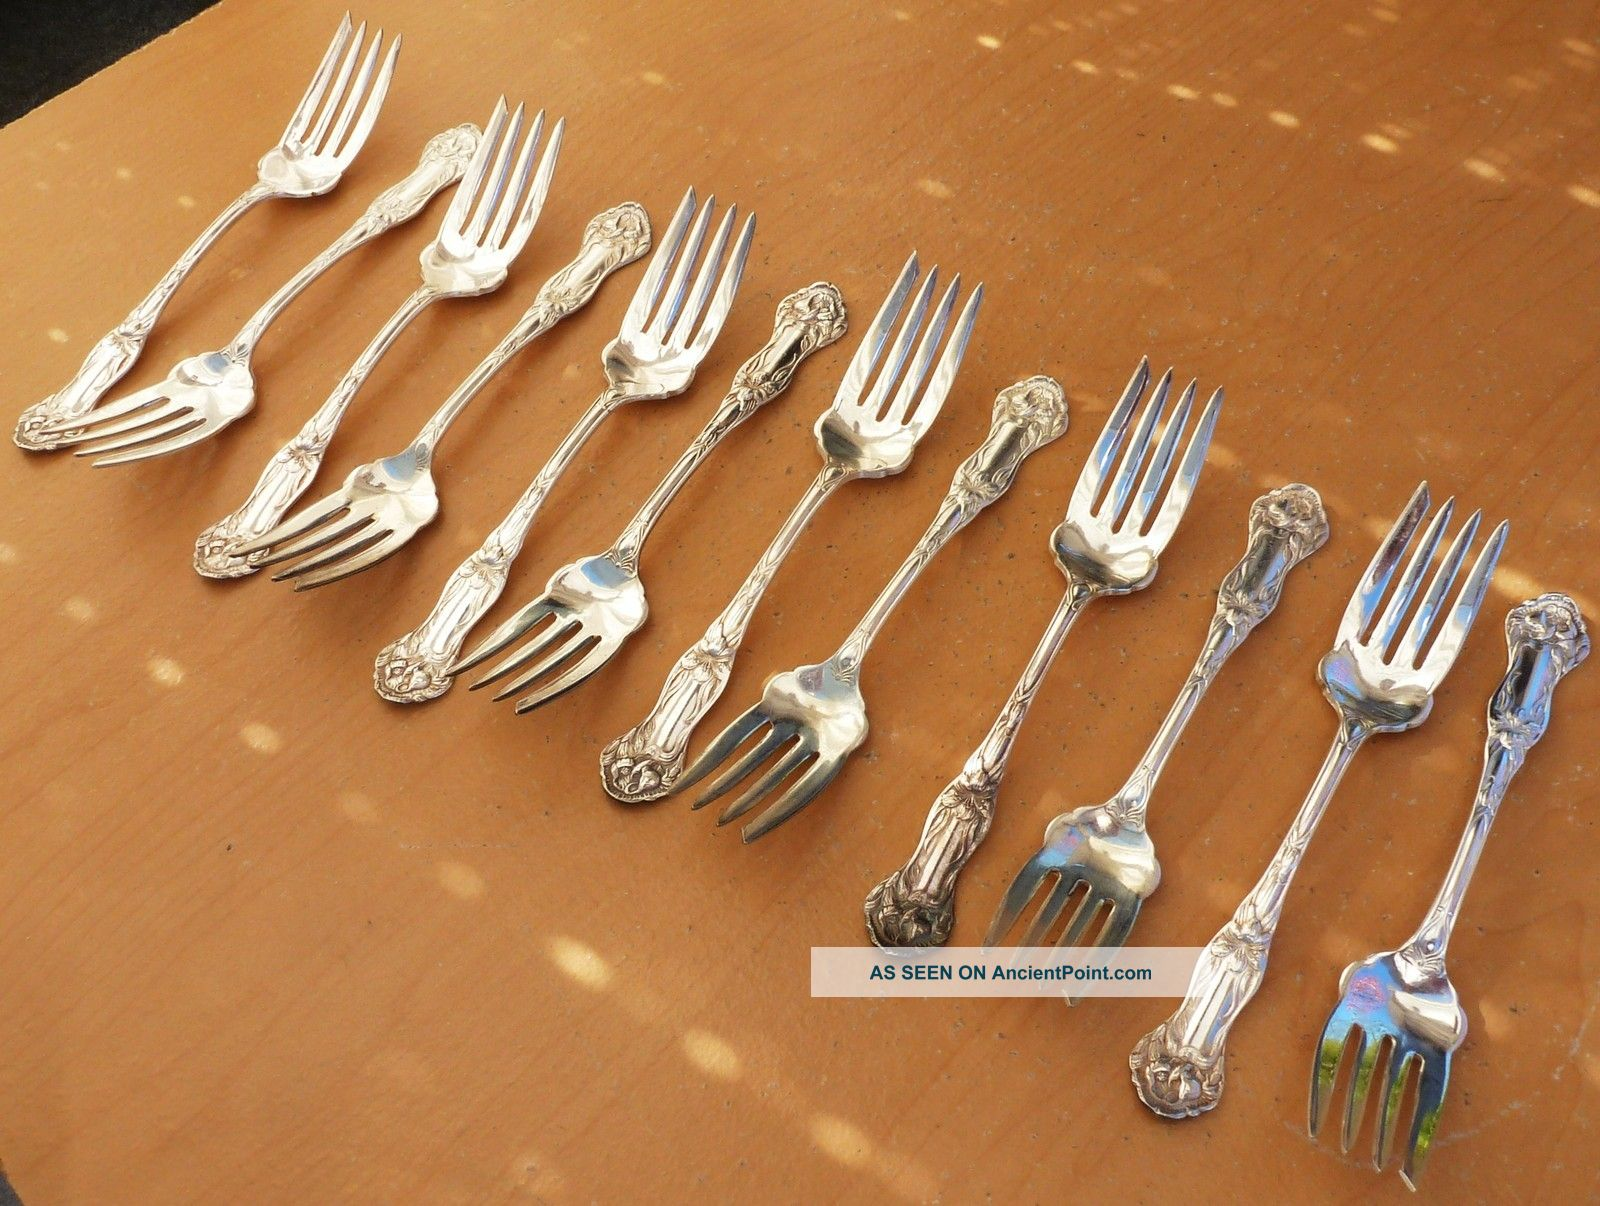 (12) 1880 Williams Brothers Mfg.  Co.  Silverplate Salad Forks,  Daffodil,  Stunning Other photo